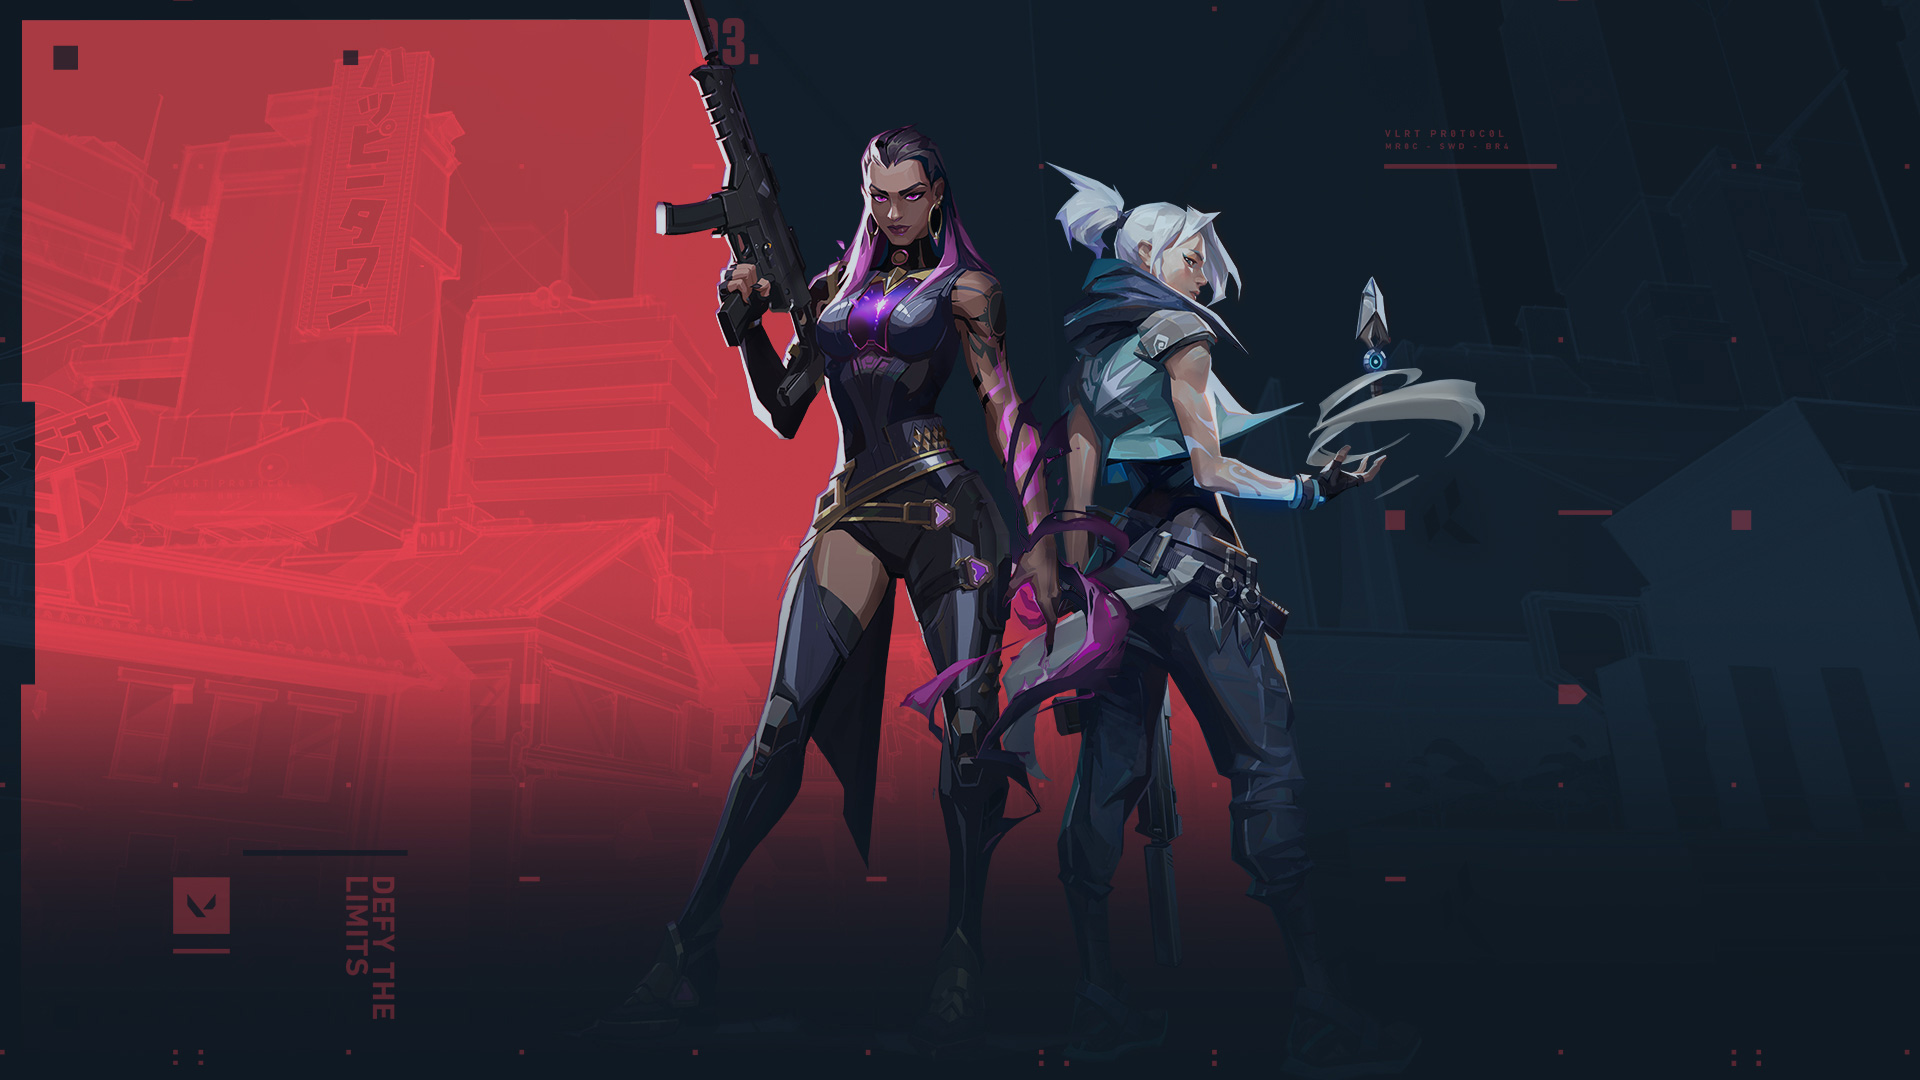 Jett and Reyna stand posed against the Valorant symbol